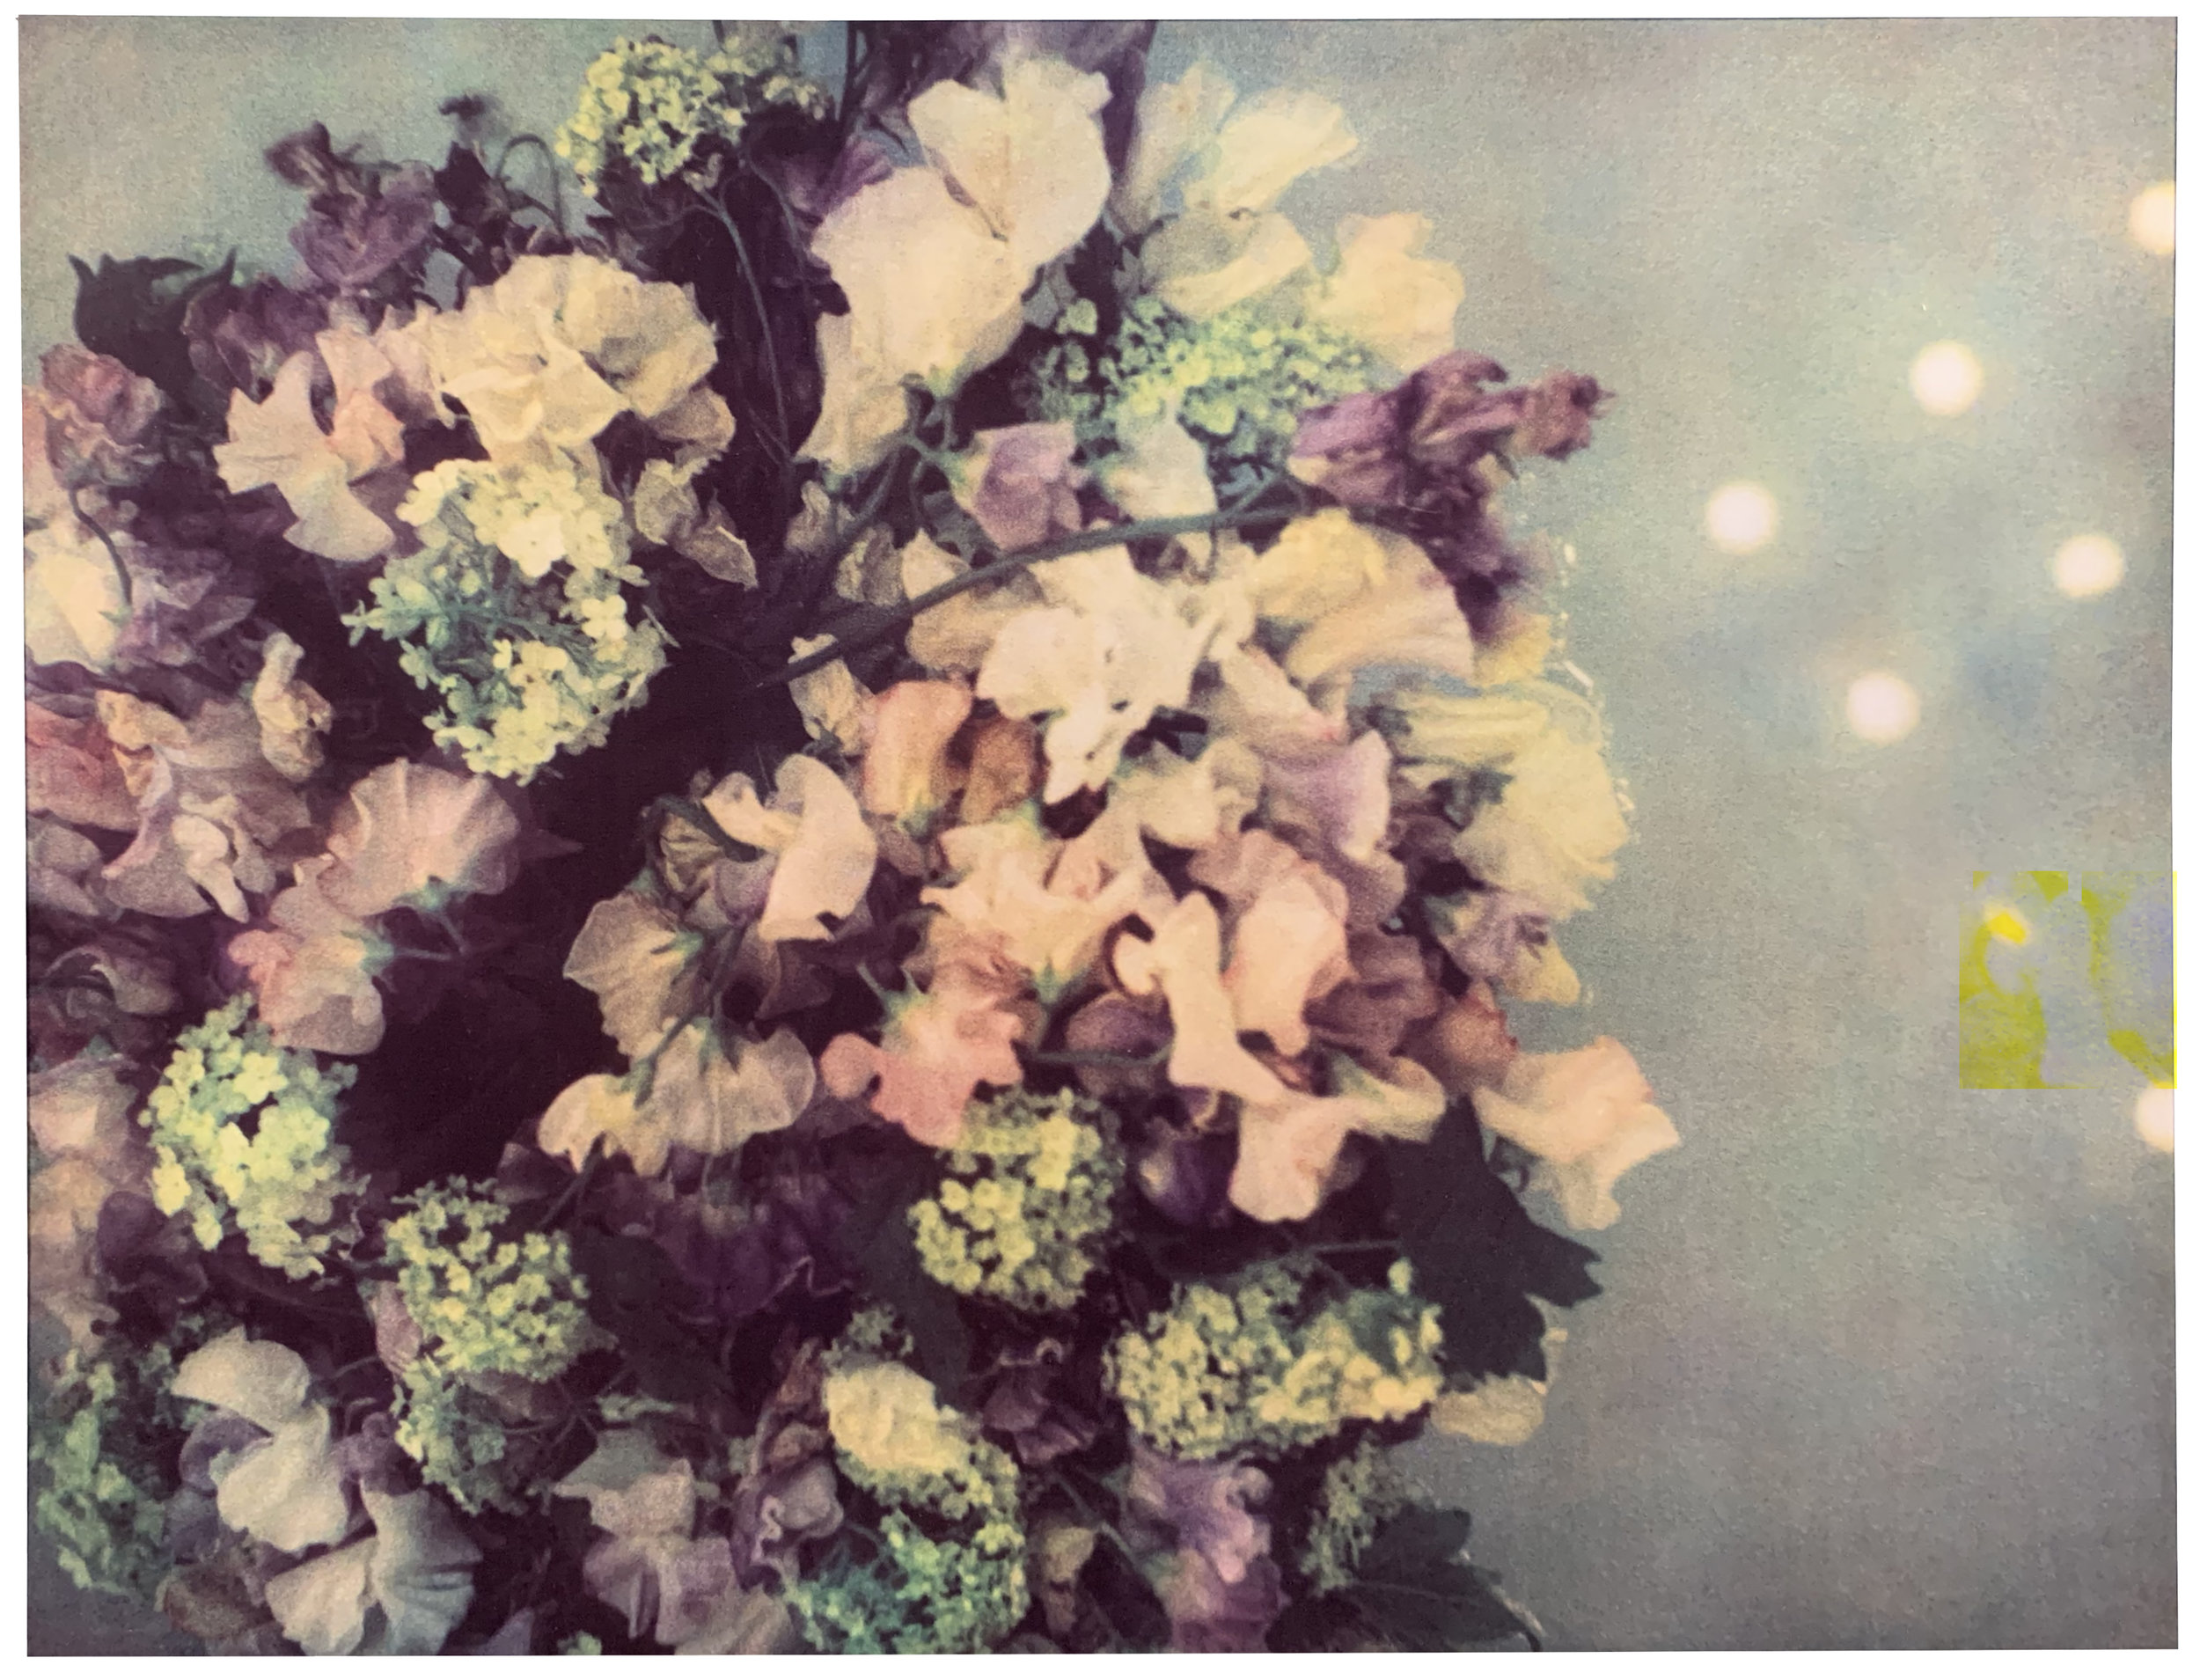 Karl Lagerfeld.  Floating Flowers,  2011. Fresson-Print. 23 5/8 x 31 1/2 inches. 60 x 80 cm.